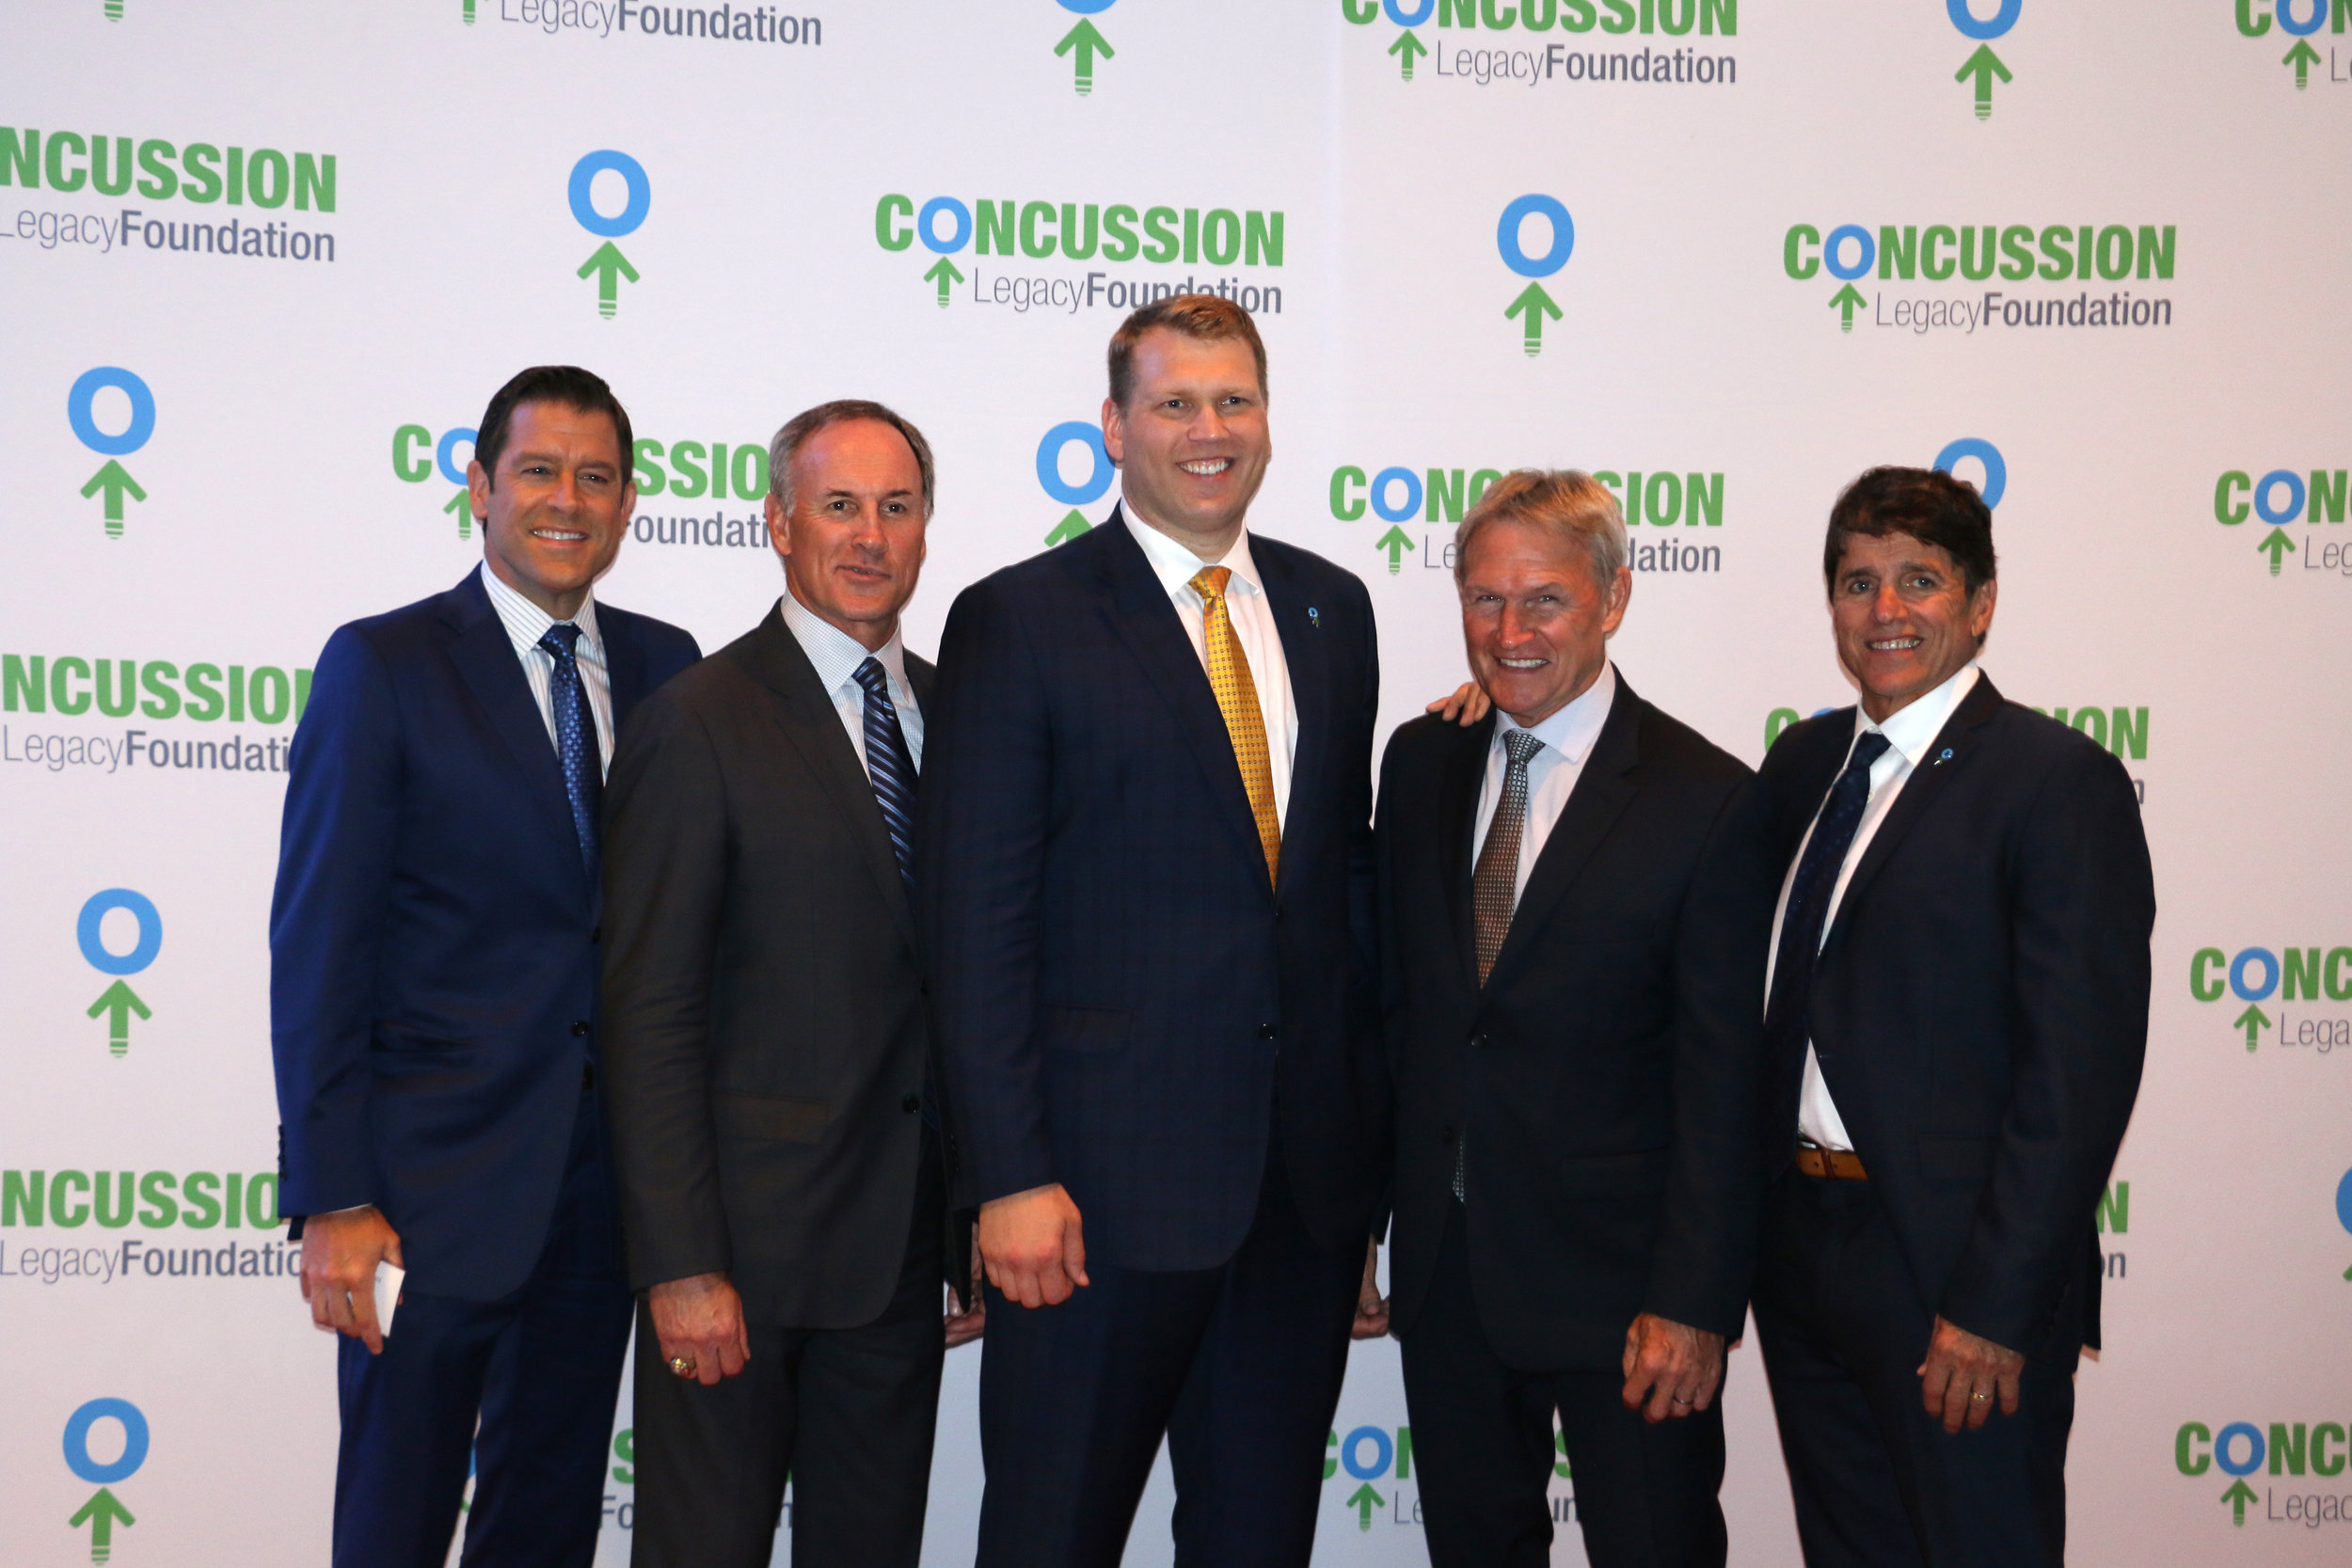 Chris Nowinski, center, poses with CBS Chicago news anchor Rob Johnson (from left), former Chicago Bears safety Gary Fencik, former Bears safety Doug Plank and former Bears running back and WWE personality Mike Adamle at the Concussion Legacy Foundation's Chicago Honors on June 28, 2018. (Photo by Mike Pankow)